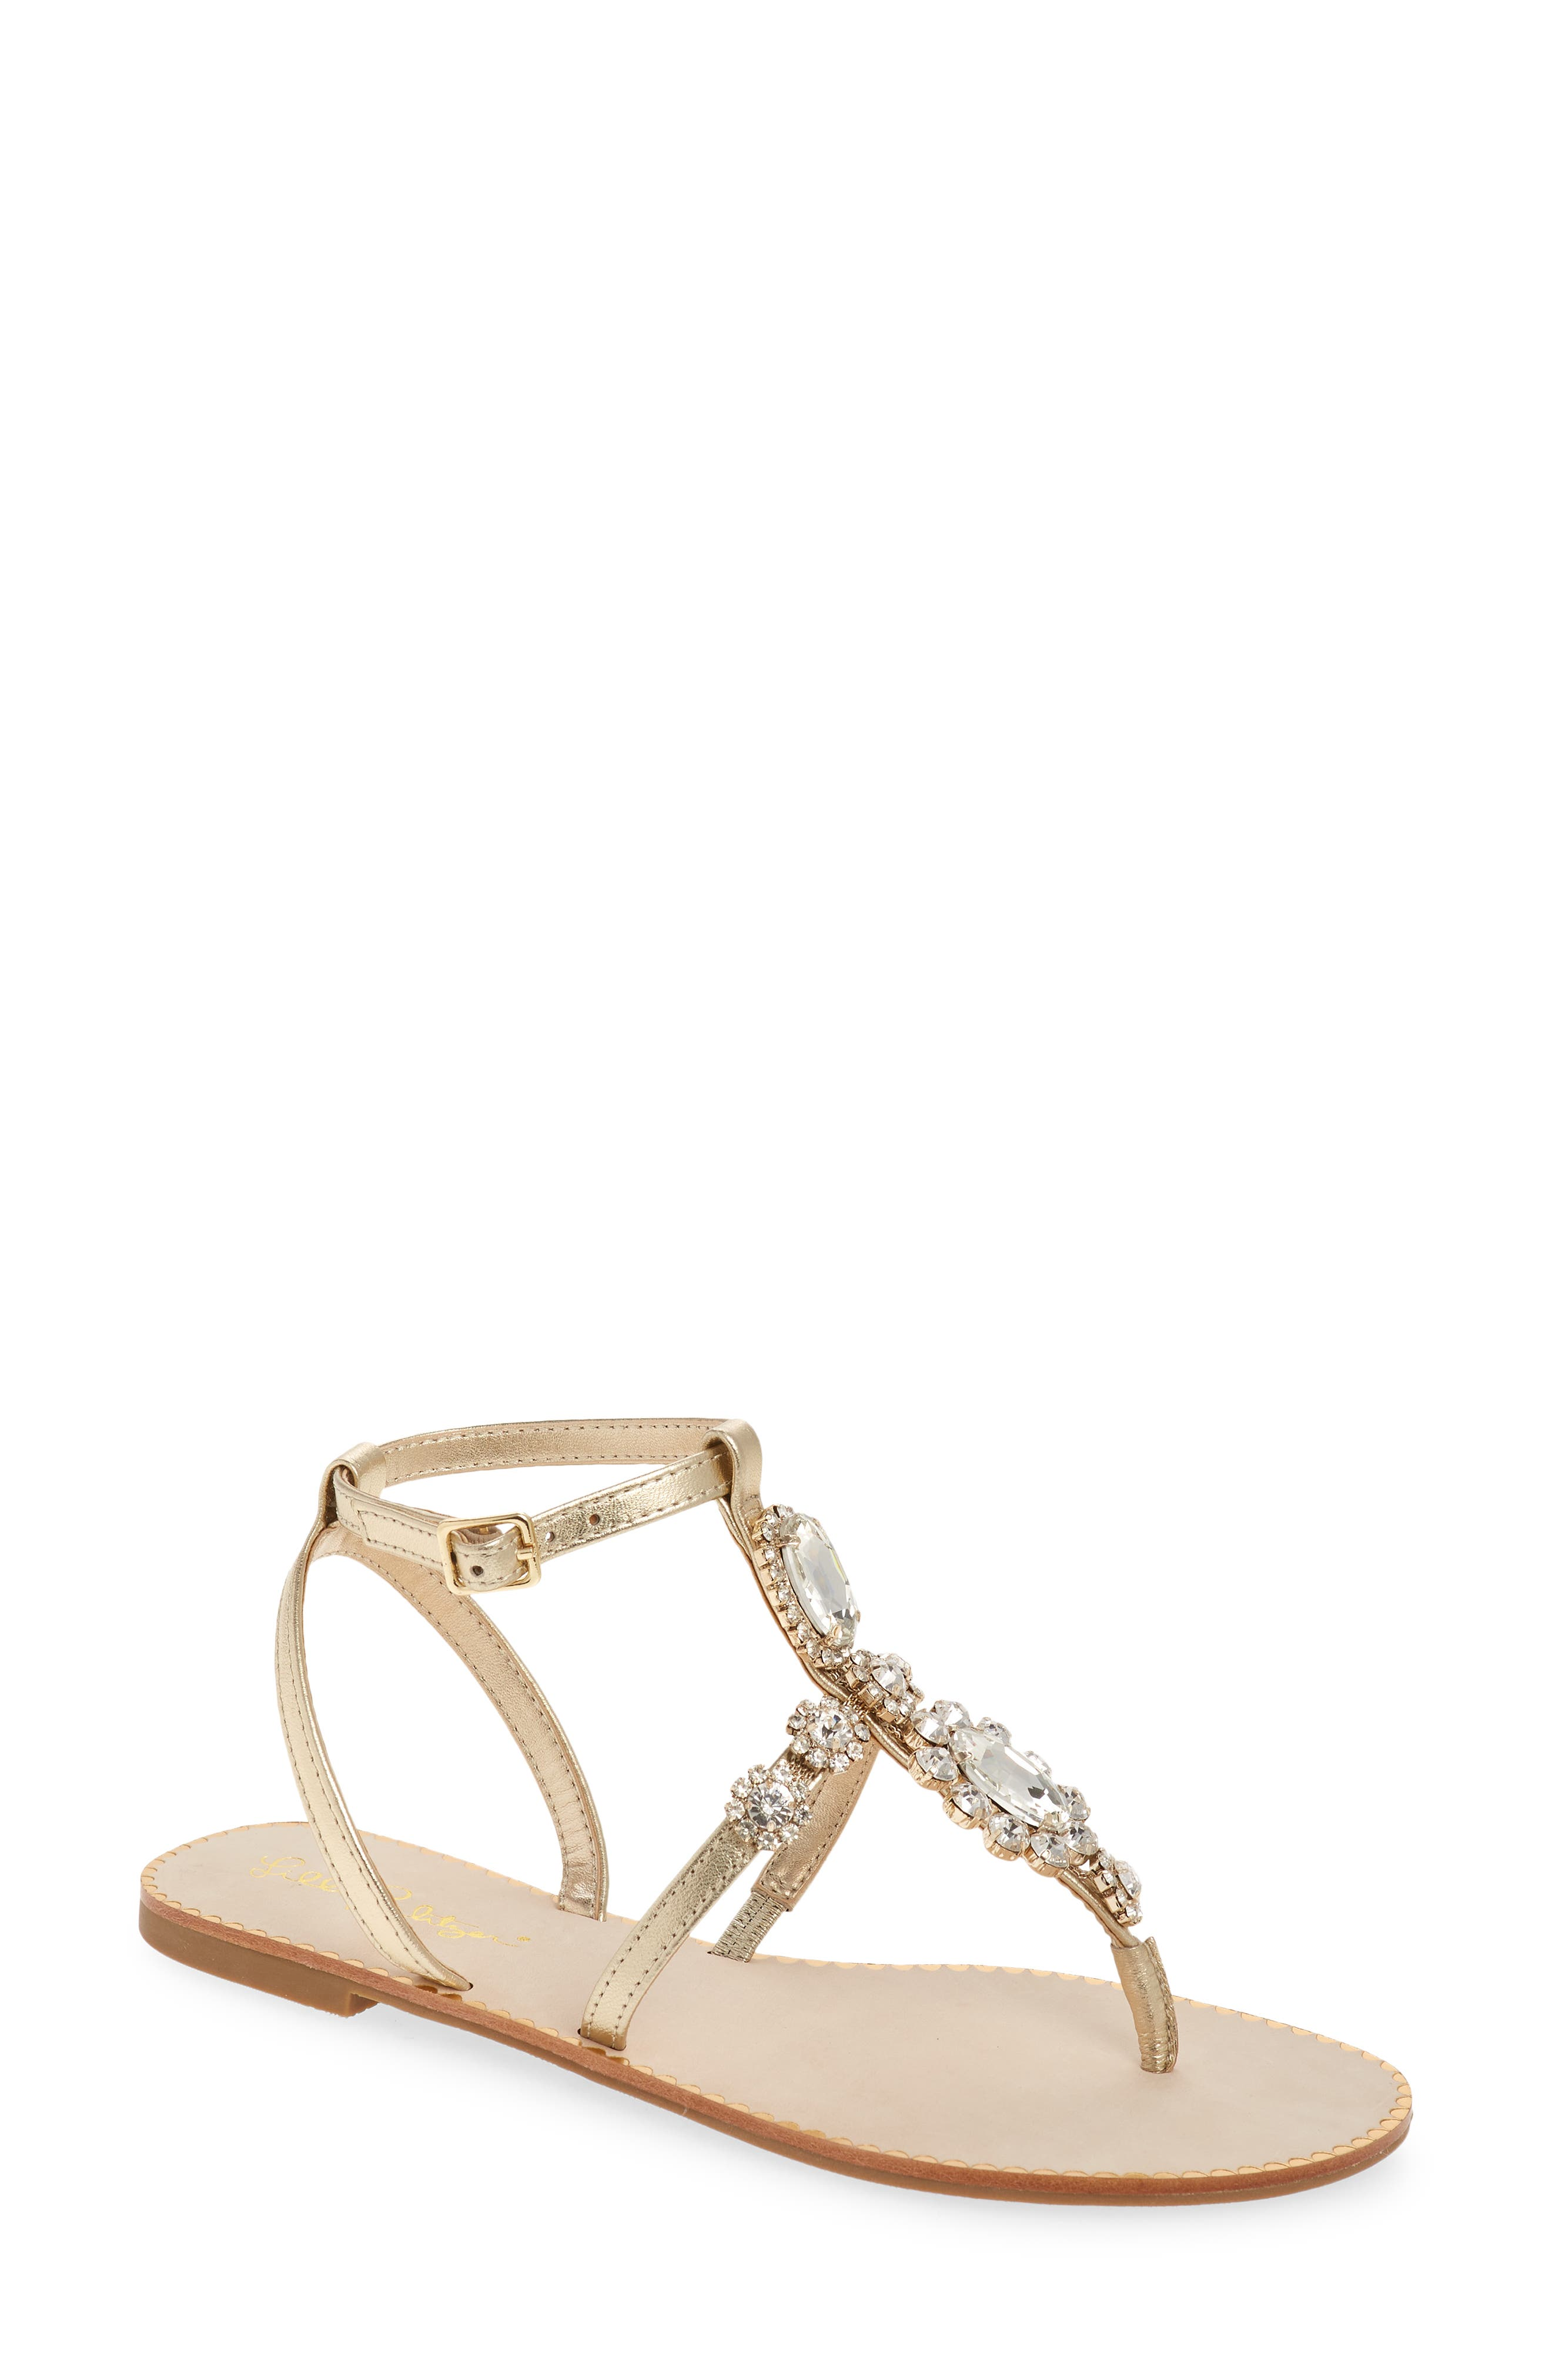 Women's Lilly Pulitzer Katie Crystal Sandal